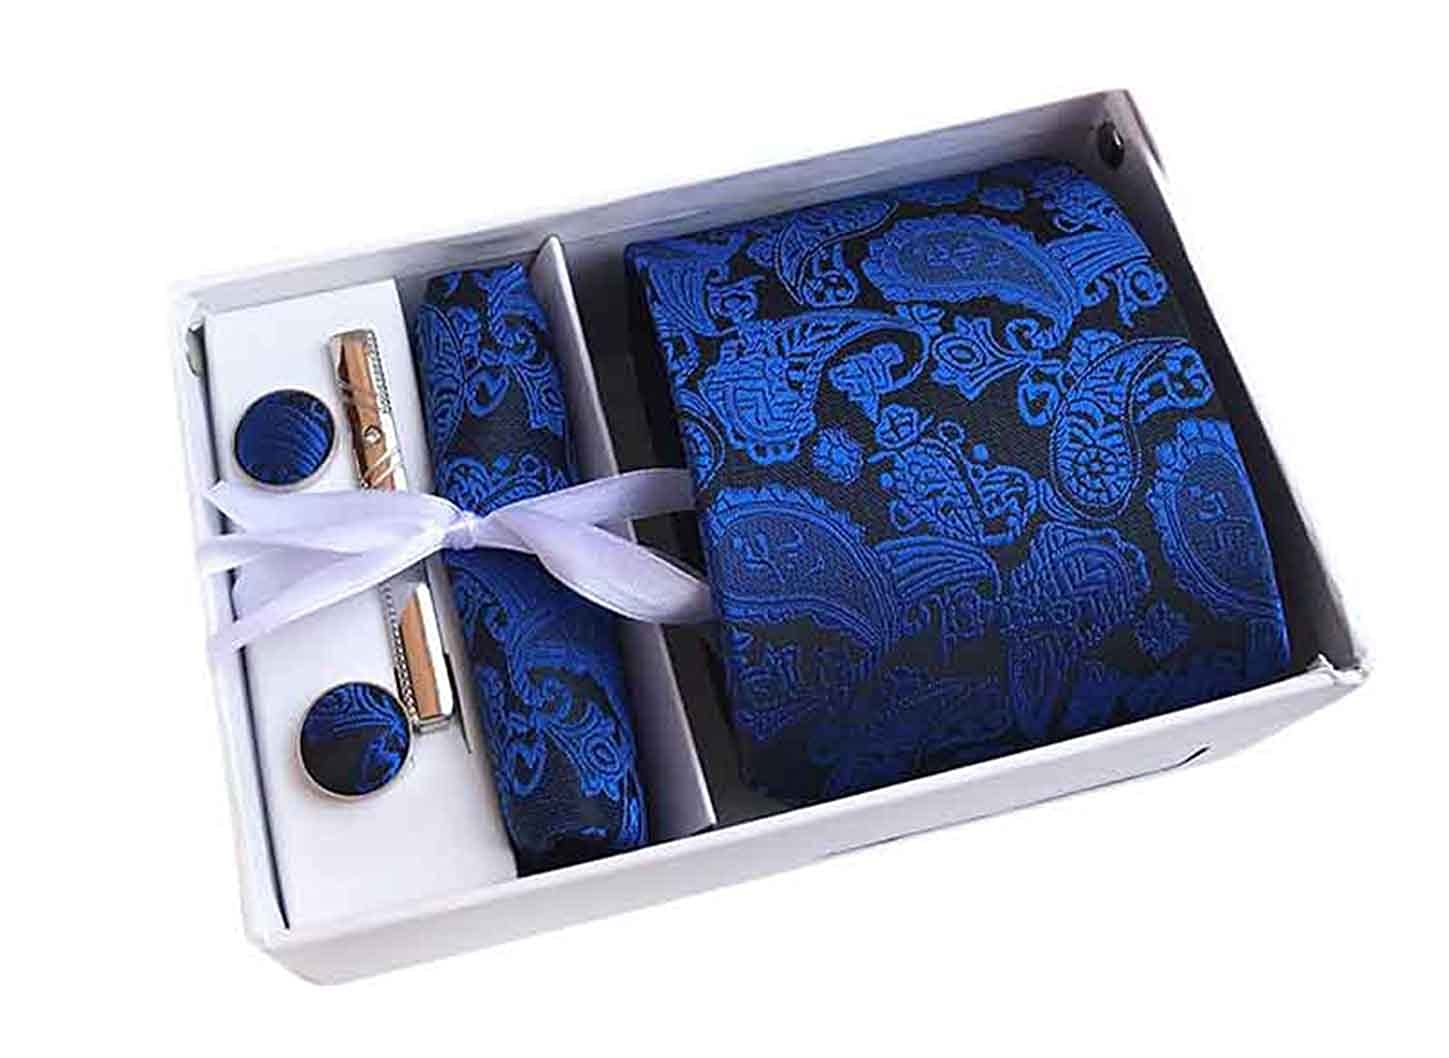 MENDENG Men's Royal Blue Paisley Necktie Tie Clip Pocket Square Cufflinks Set ENG1541